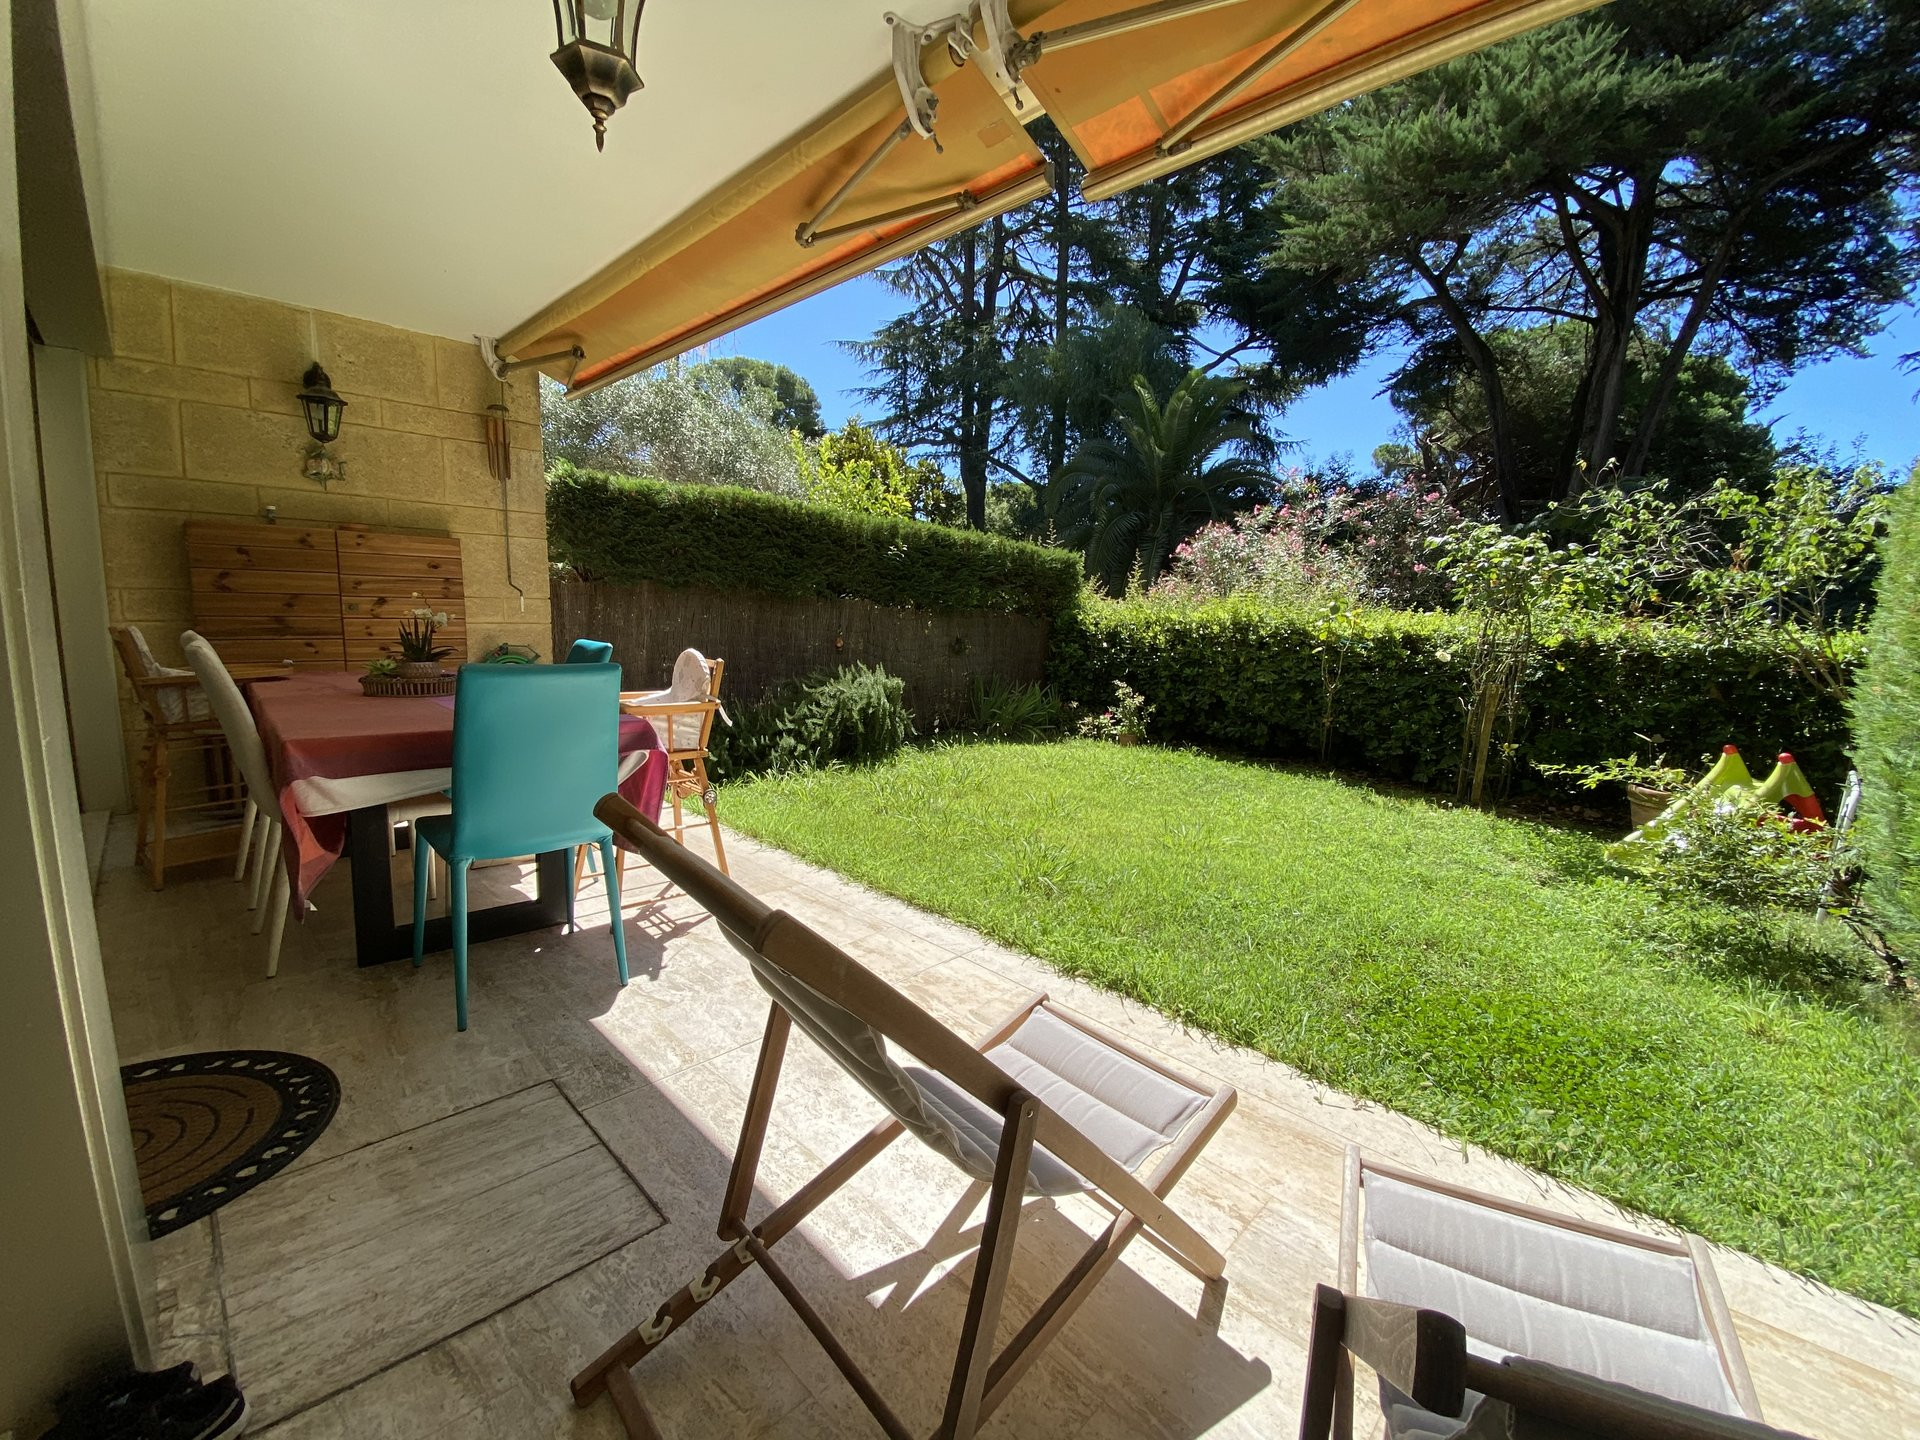 CANNES French Riviera Apartment 2 bedrooms for sale